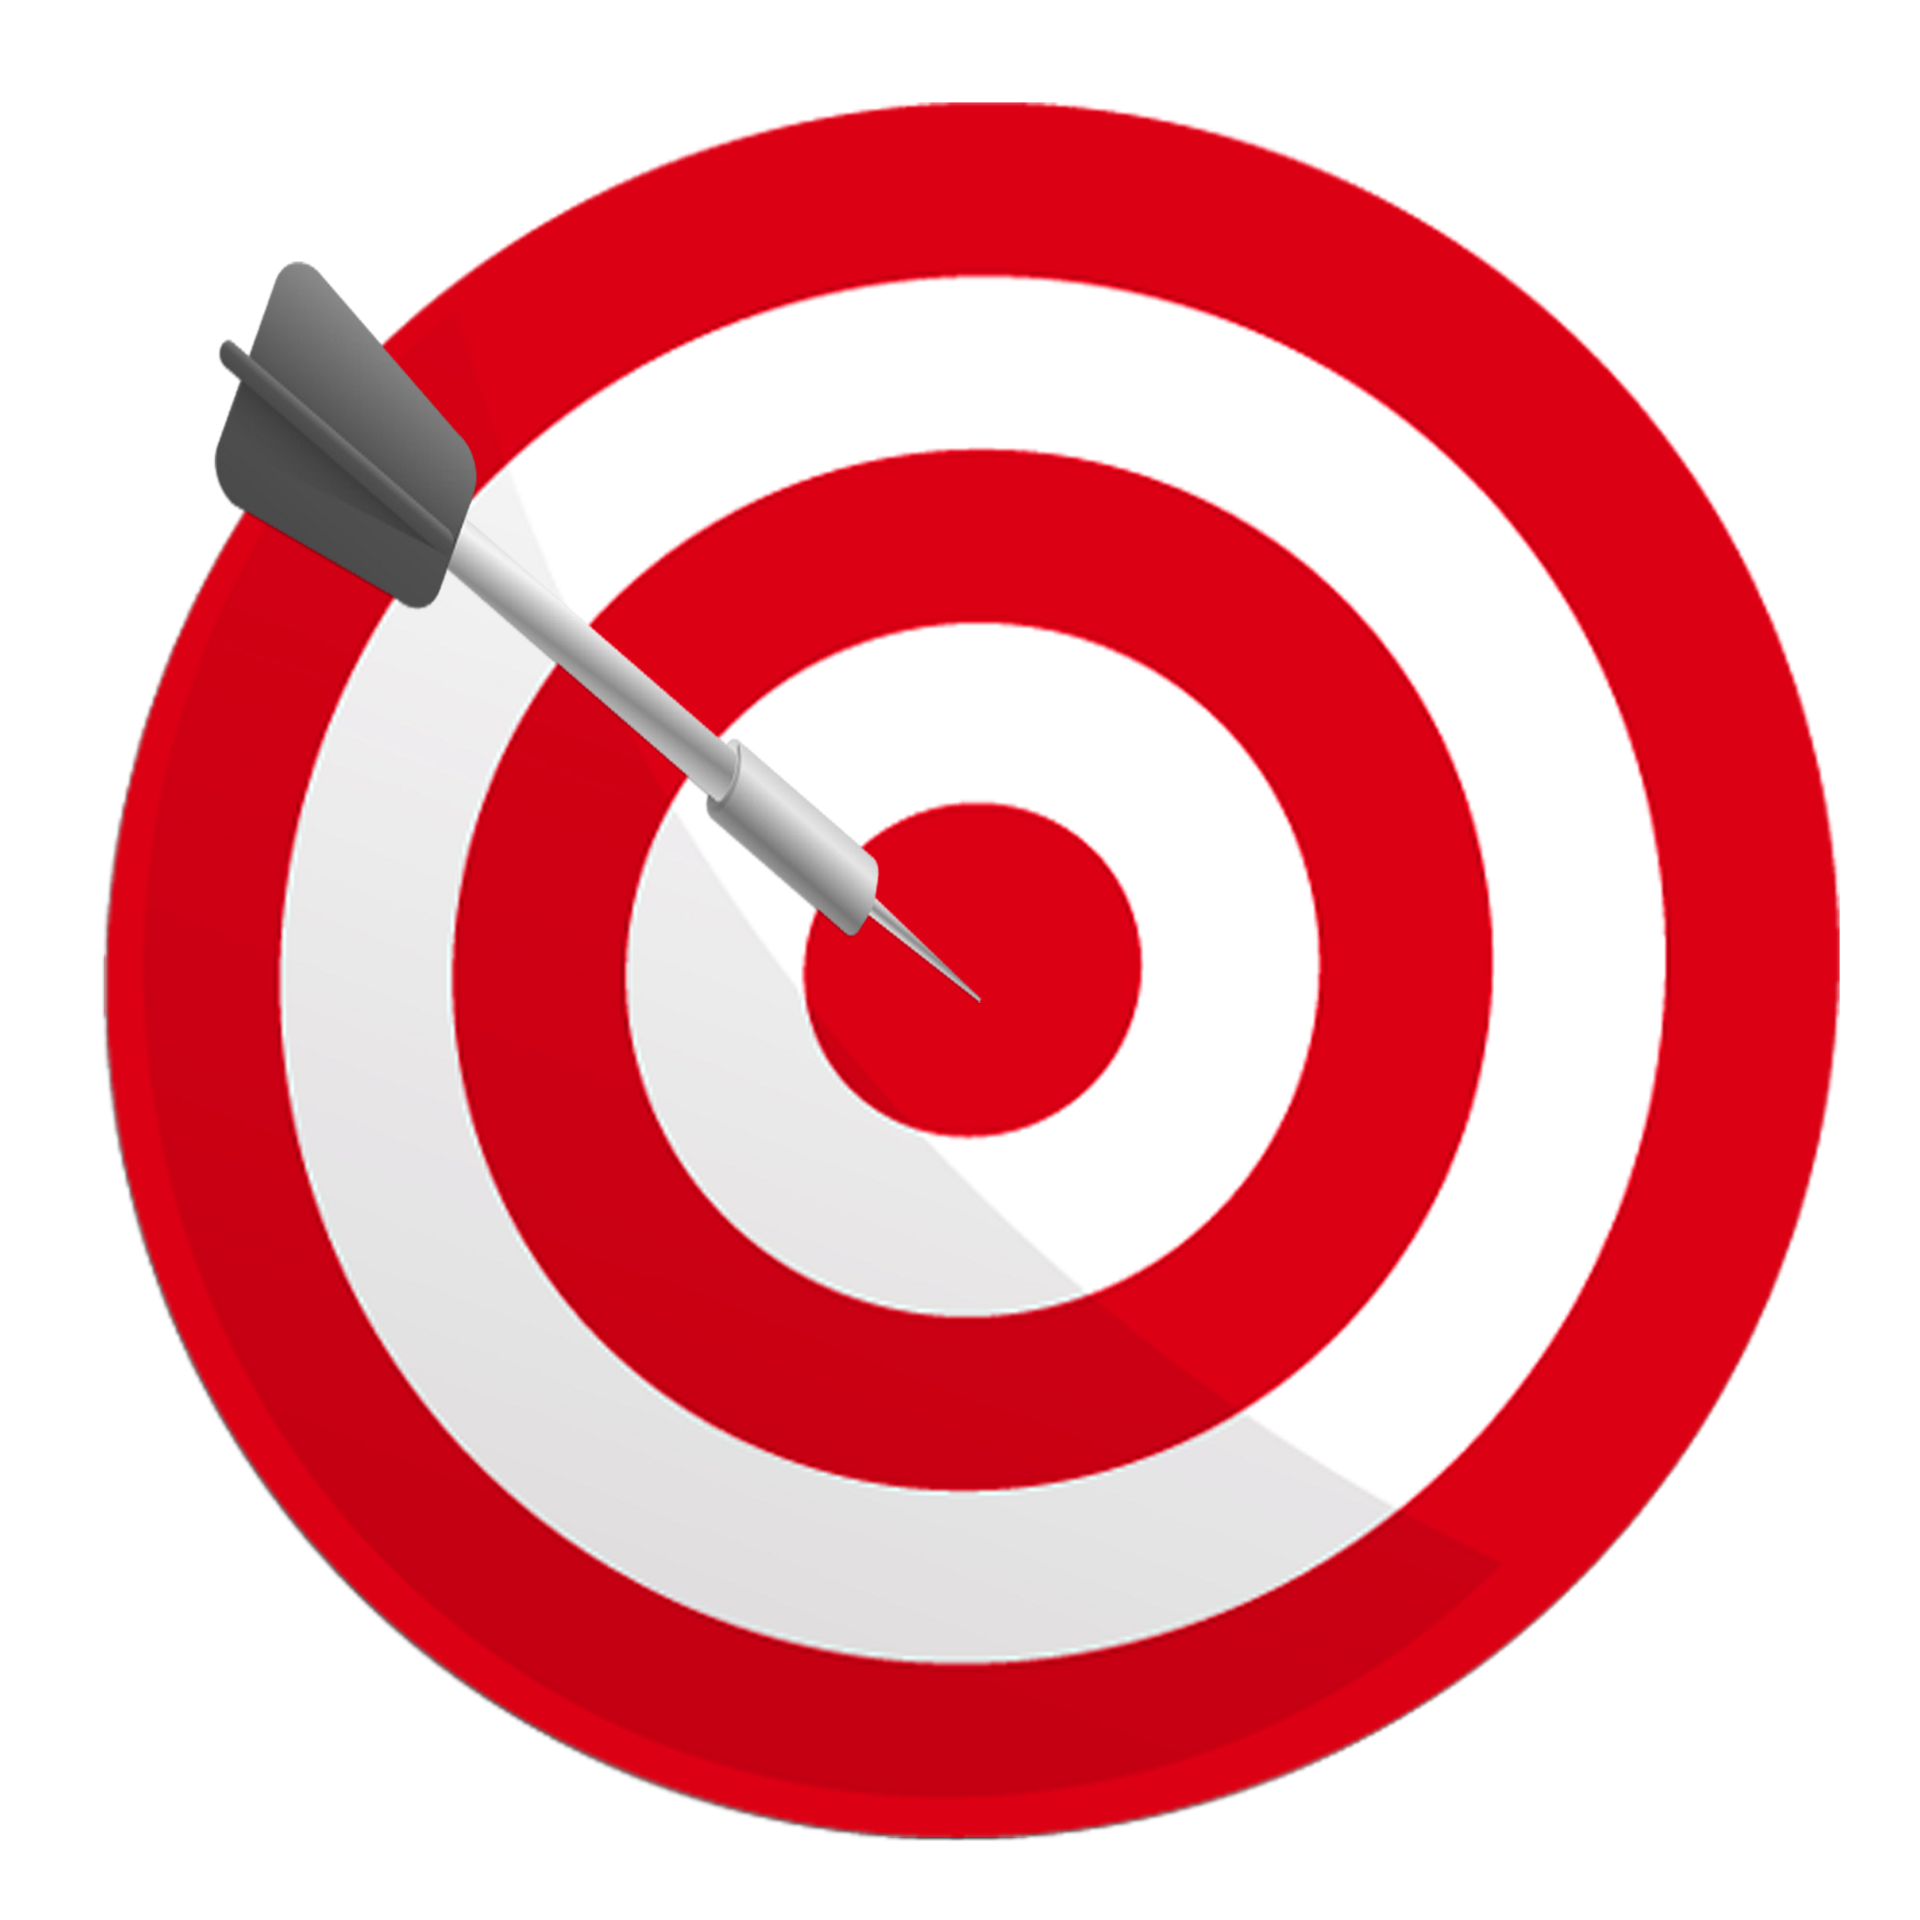 Dart clipart achieved target. Real exits what makes